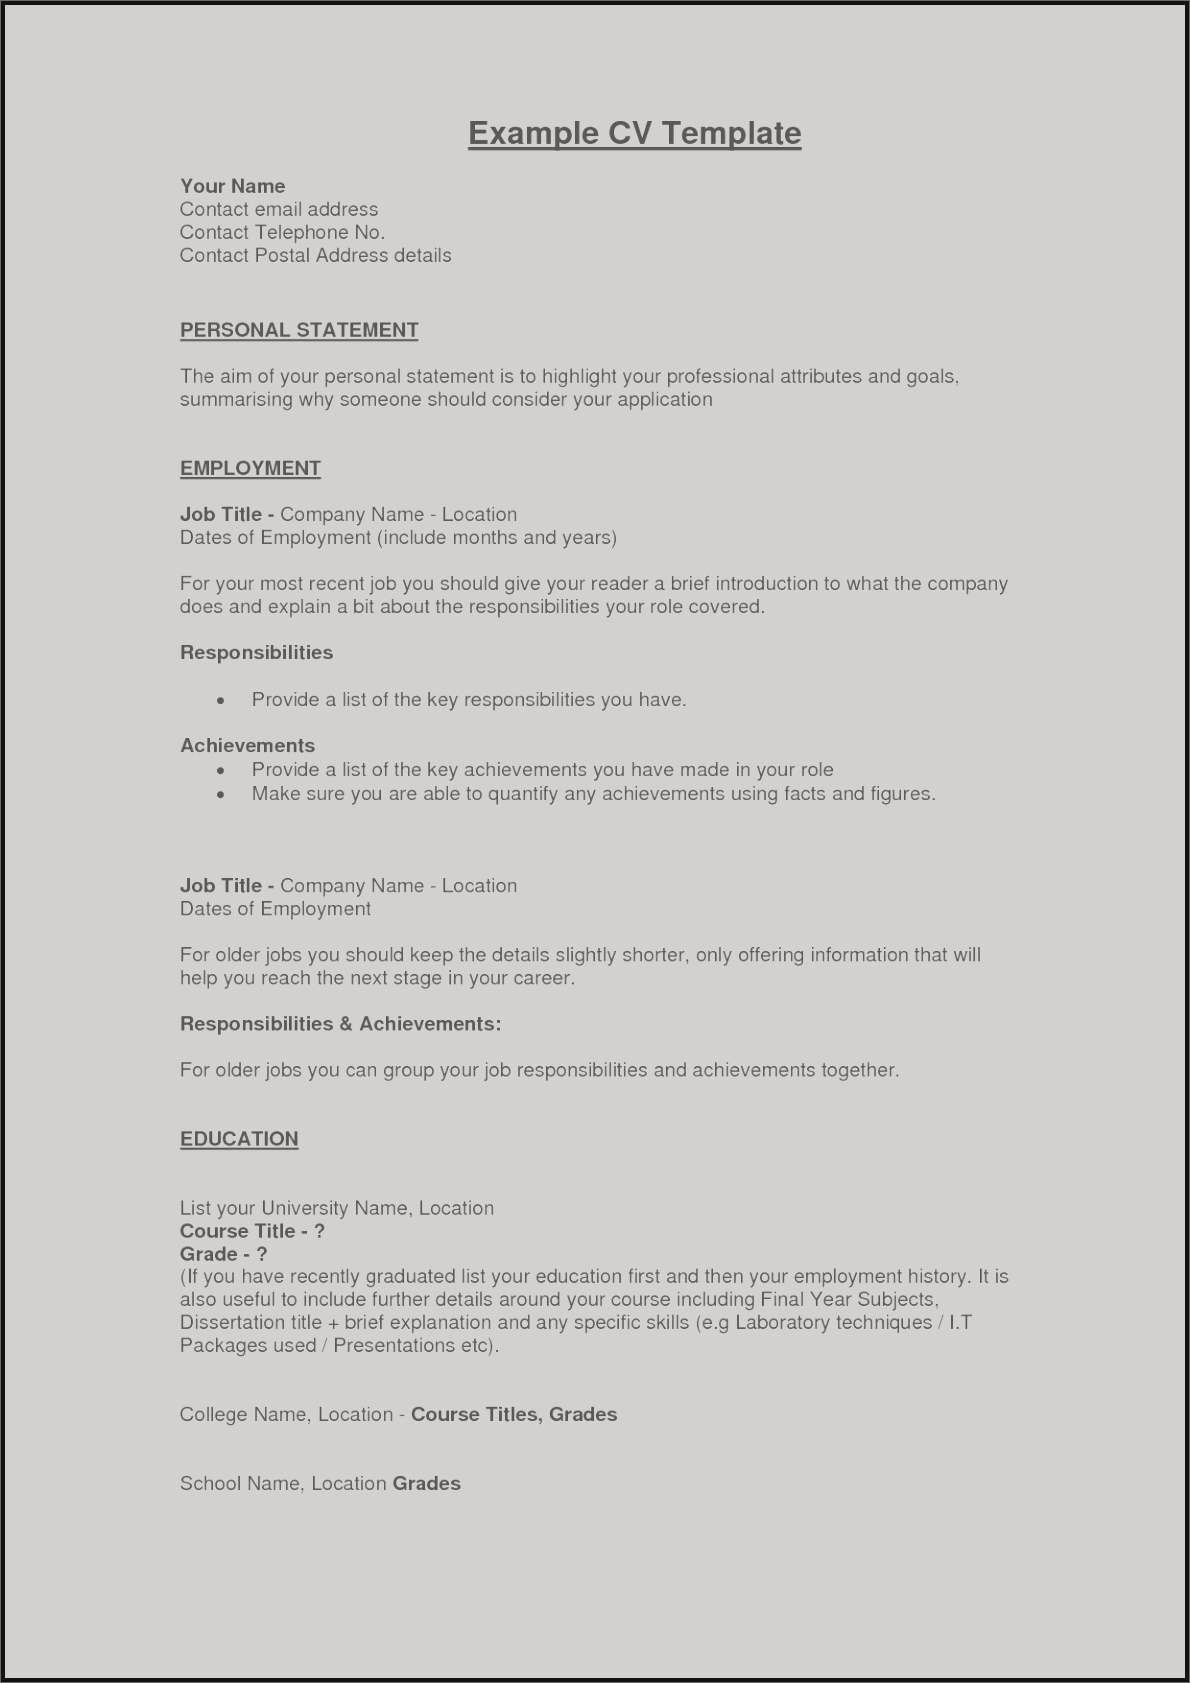 Us Resume Template - 89 Inspirational Examples Great Resumes Chart Image